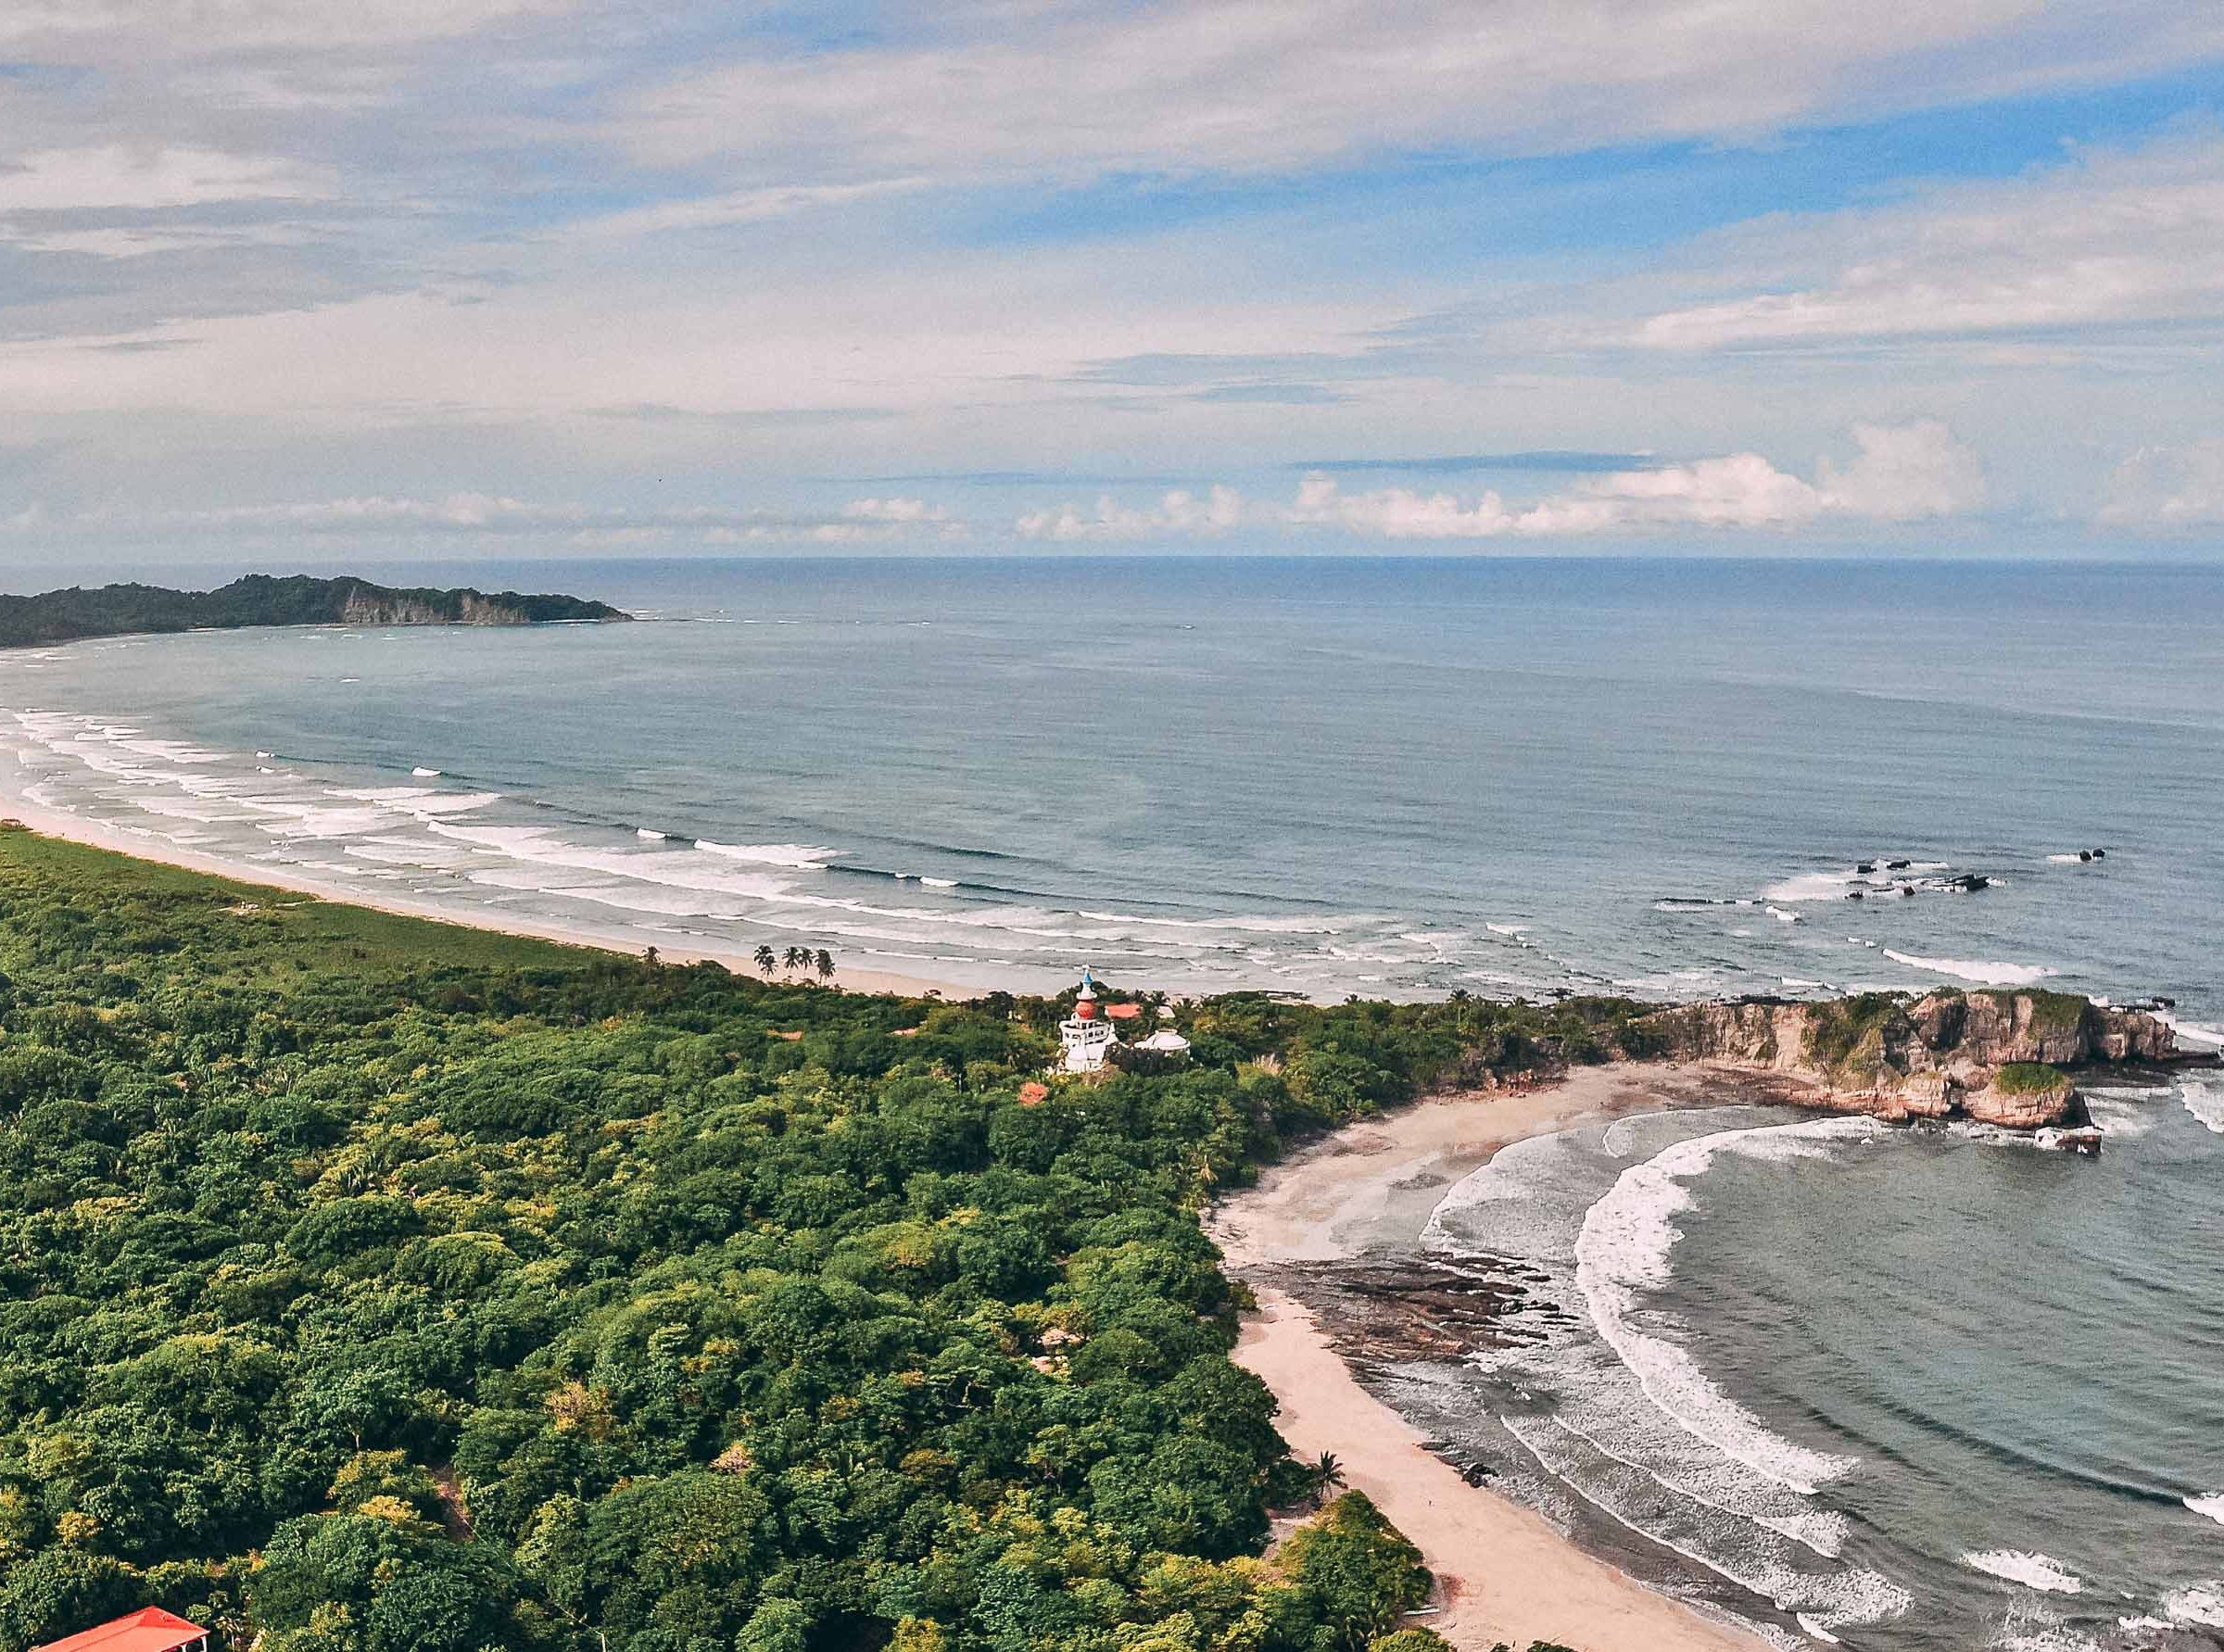 Playa Guiones Costa Rica